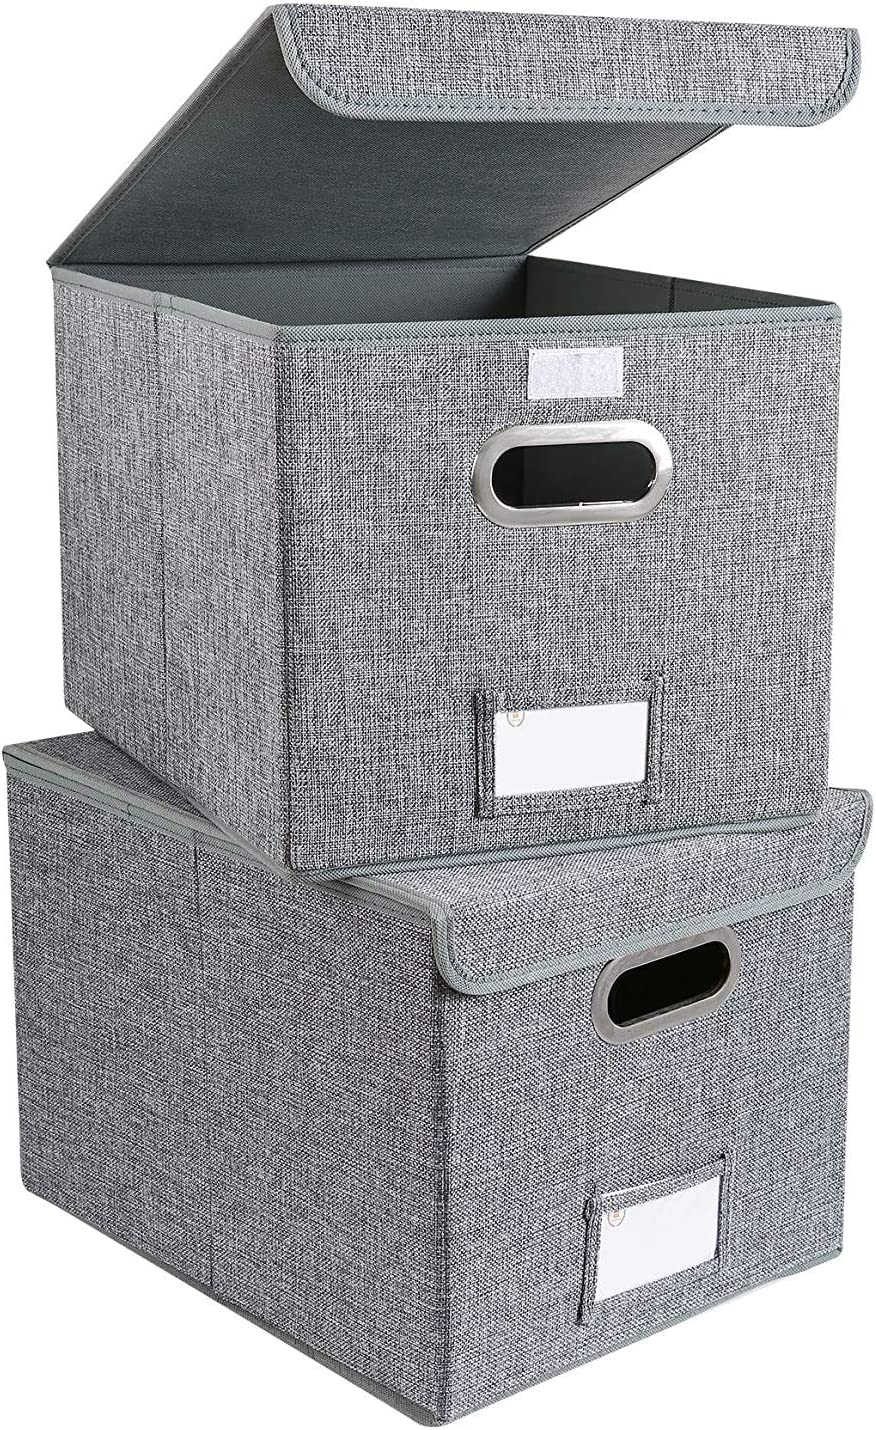 Collapsible File Box with Lid Decorative Documents Storage Organizer with Linen Filing, Home Office Bin, Letter Size Legal Size, Gray,[2-Pack]